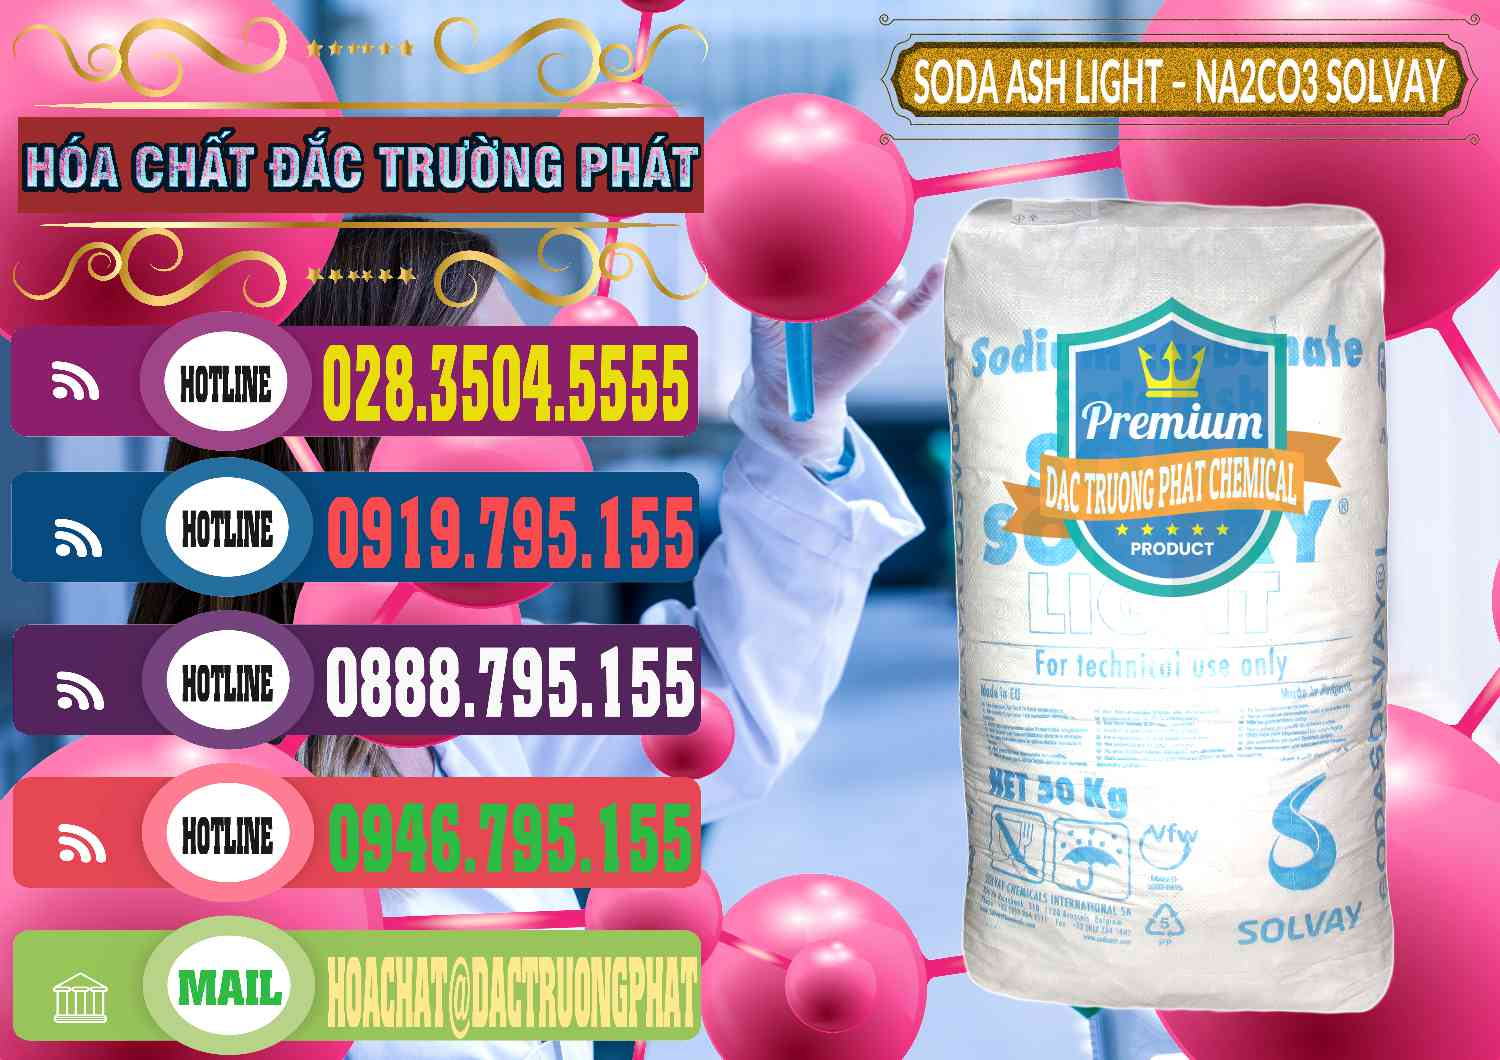 Công ty chuyên bán ( cung ứng ) Soda Ash Light - NA2CO3 Solvay Bulgaria – 0138 - Đơn vị cung cấp - bán hóa chất tại TP.HCM